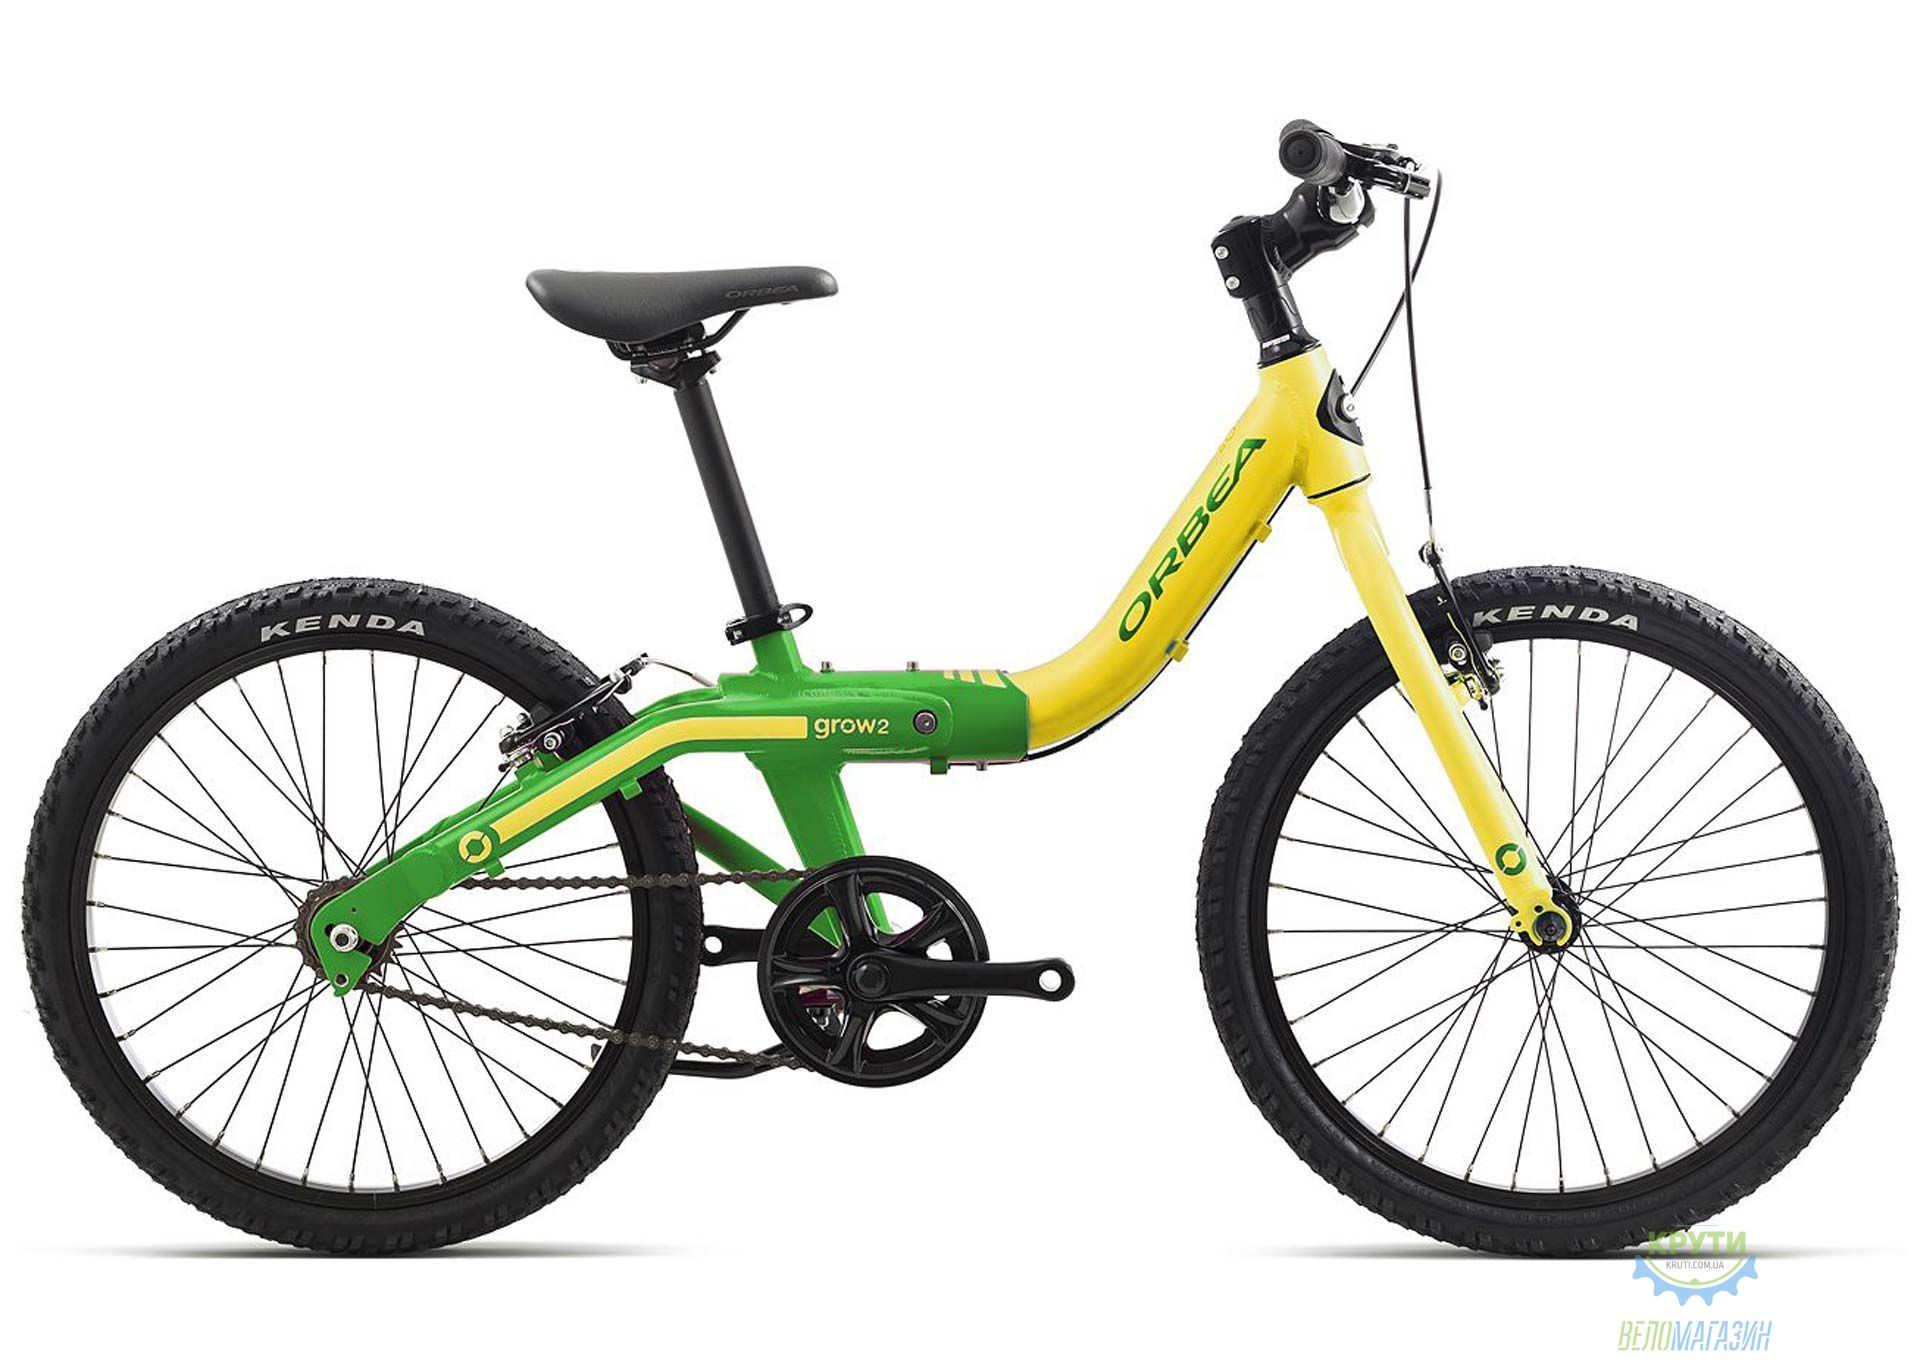 Велосипед Orbea GROW 2 1V 18 Pistach - Green 2018